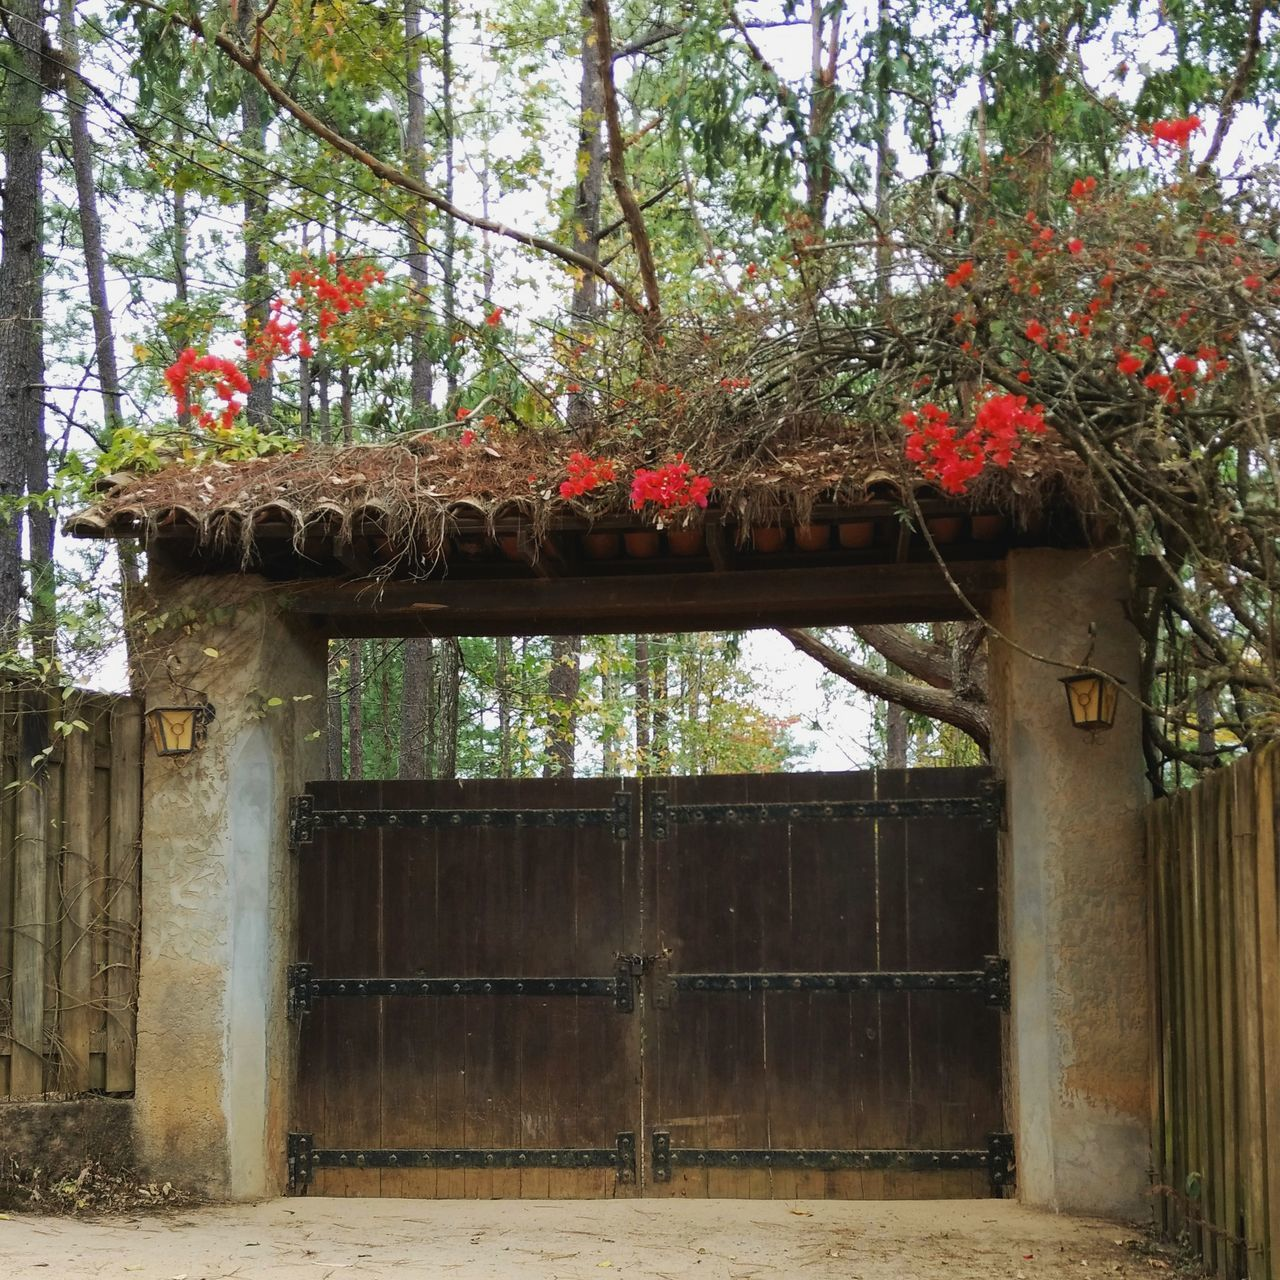 Door Tree Growth Built Structure Building Exterior No People Architecture Beauty In Nature Outdoors Nature Day Nature Green Taking Photos Honduras